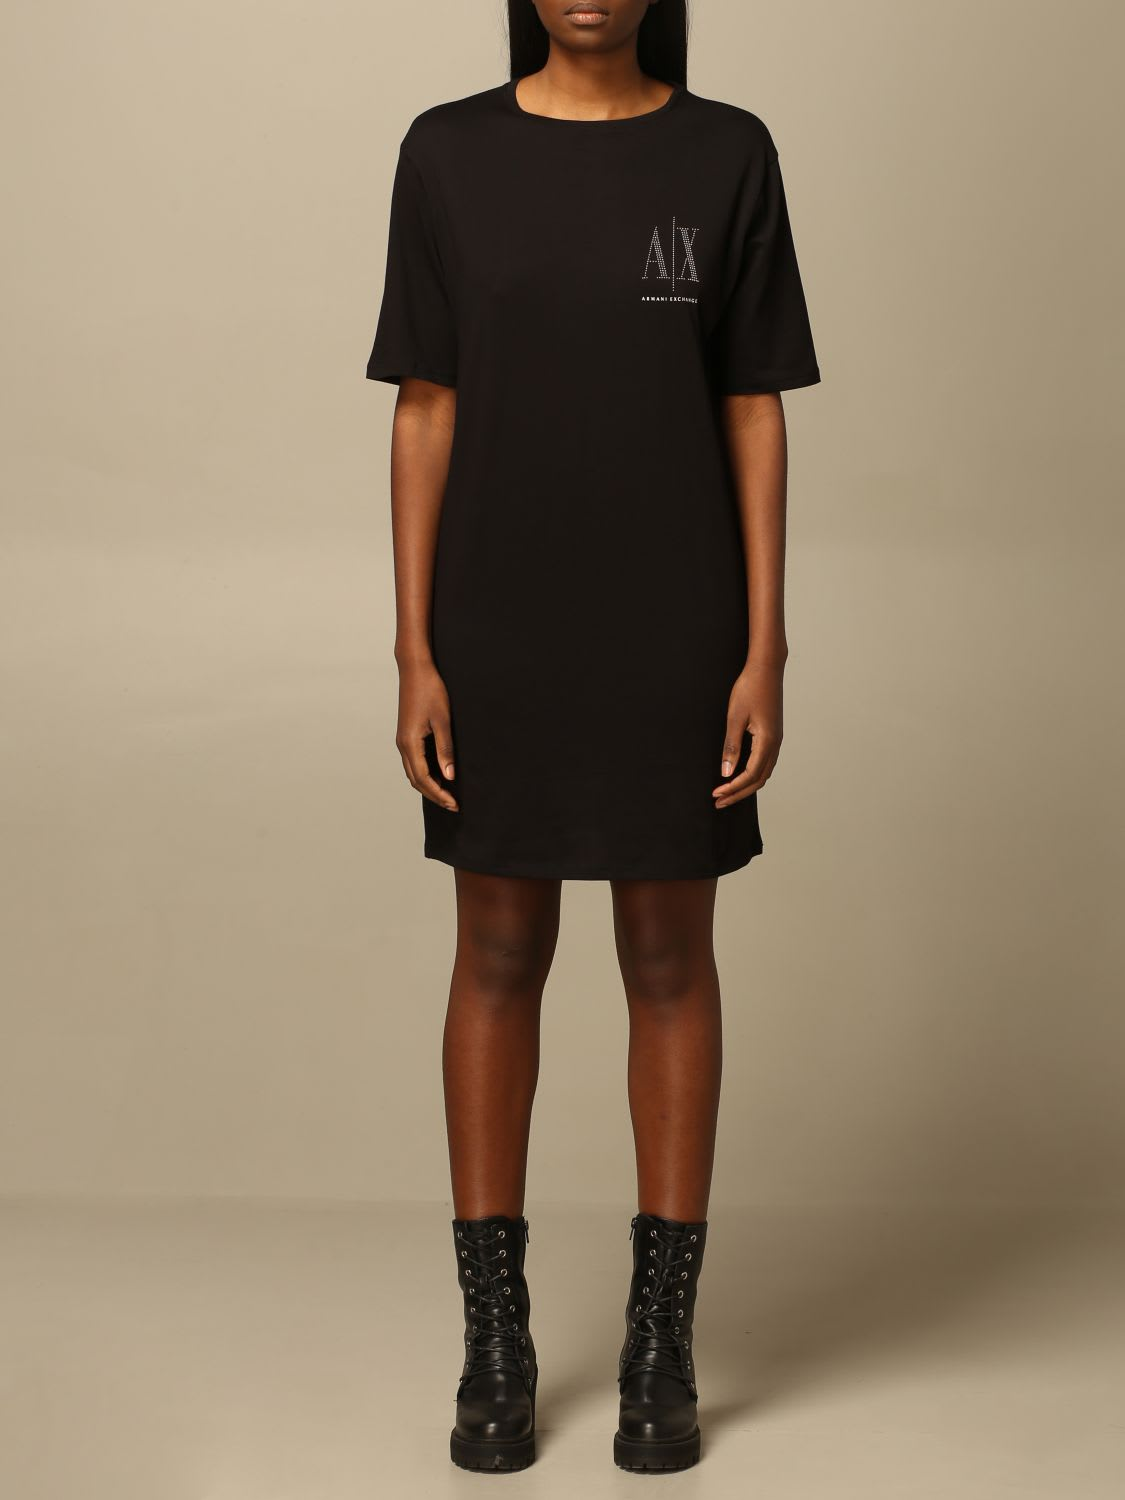 Buy Armani Exchange Dress Armani Exchange Short Dress With Logo online, shop Armani Collezioni with free shipping